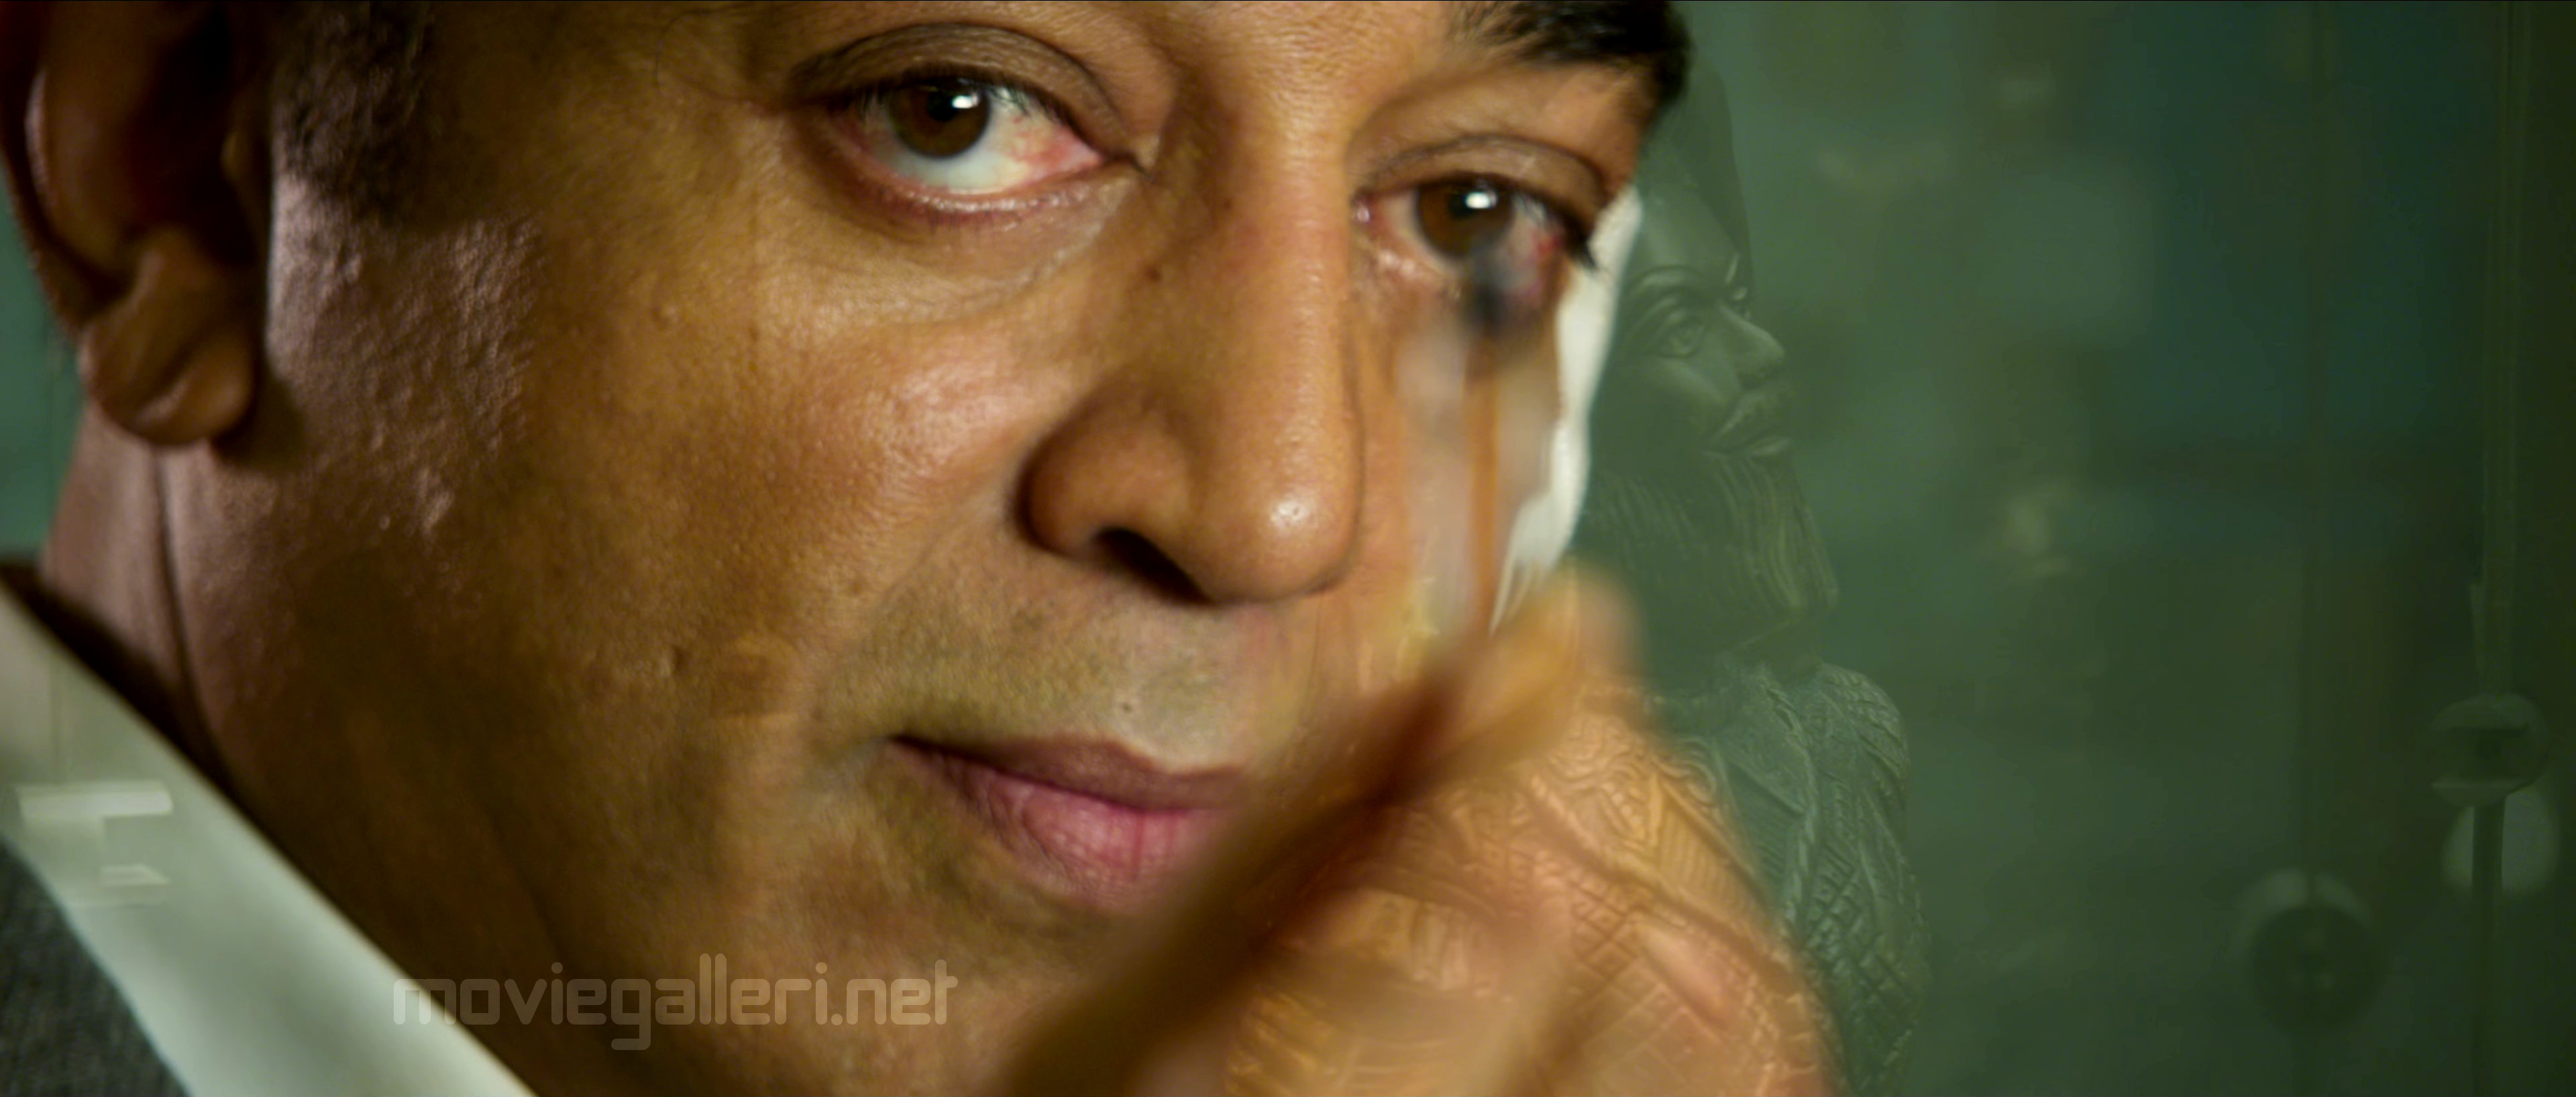 Kamal Haasan Vishwaroopam 2 Ready to face any problem